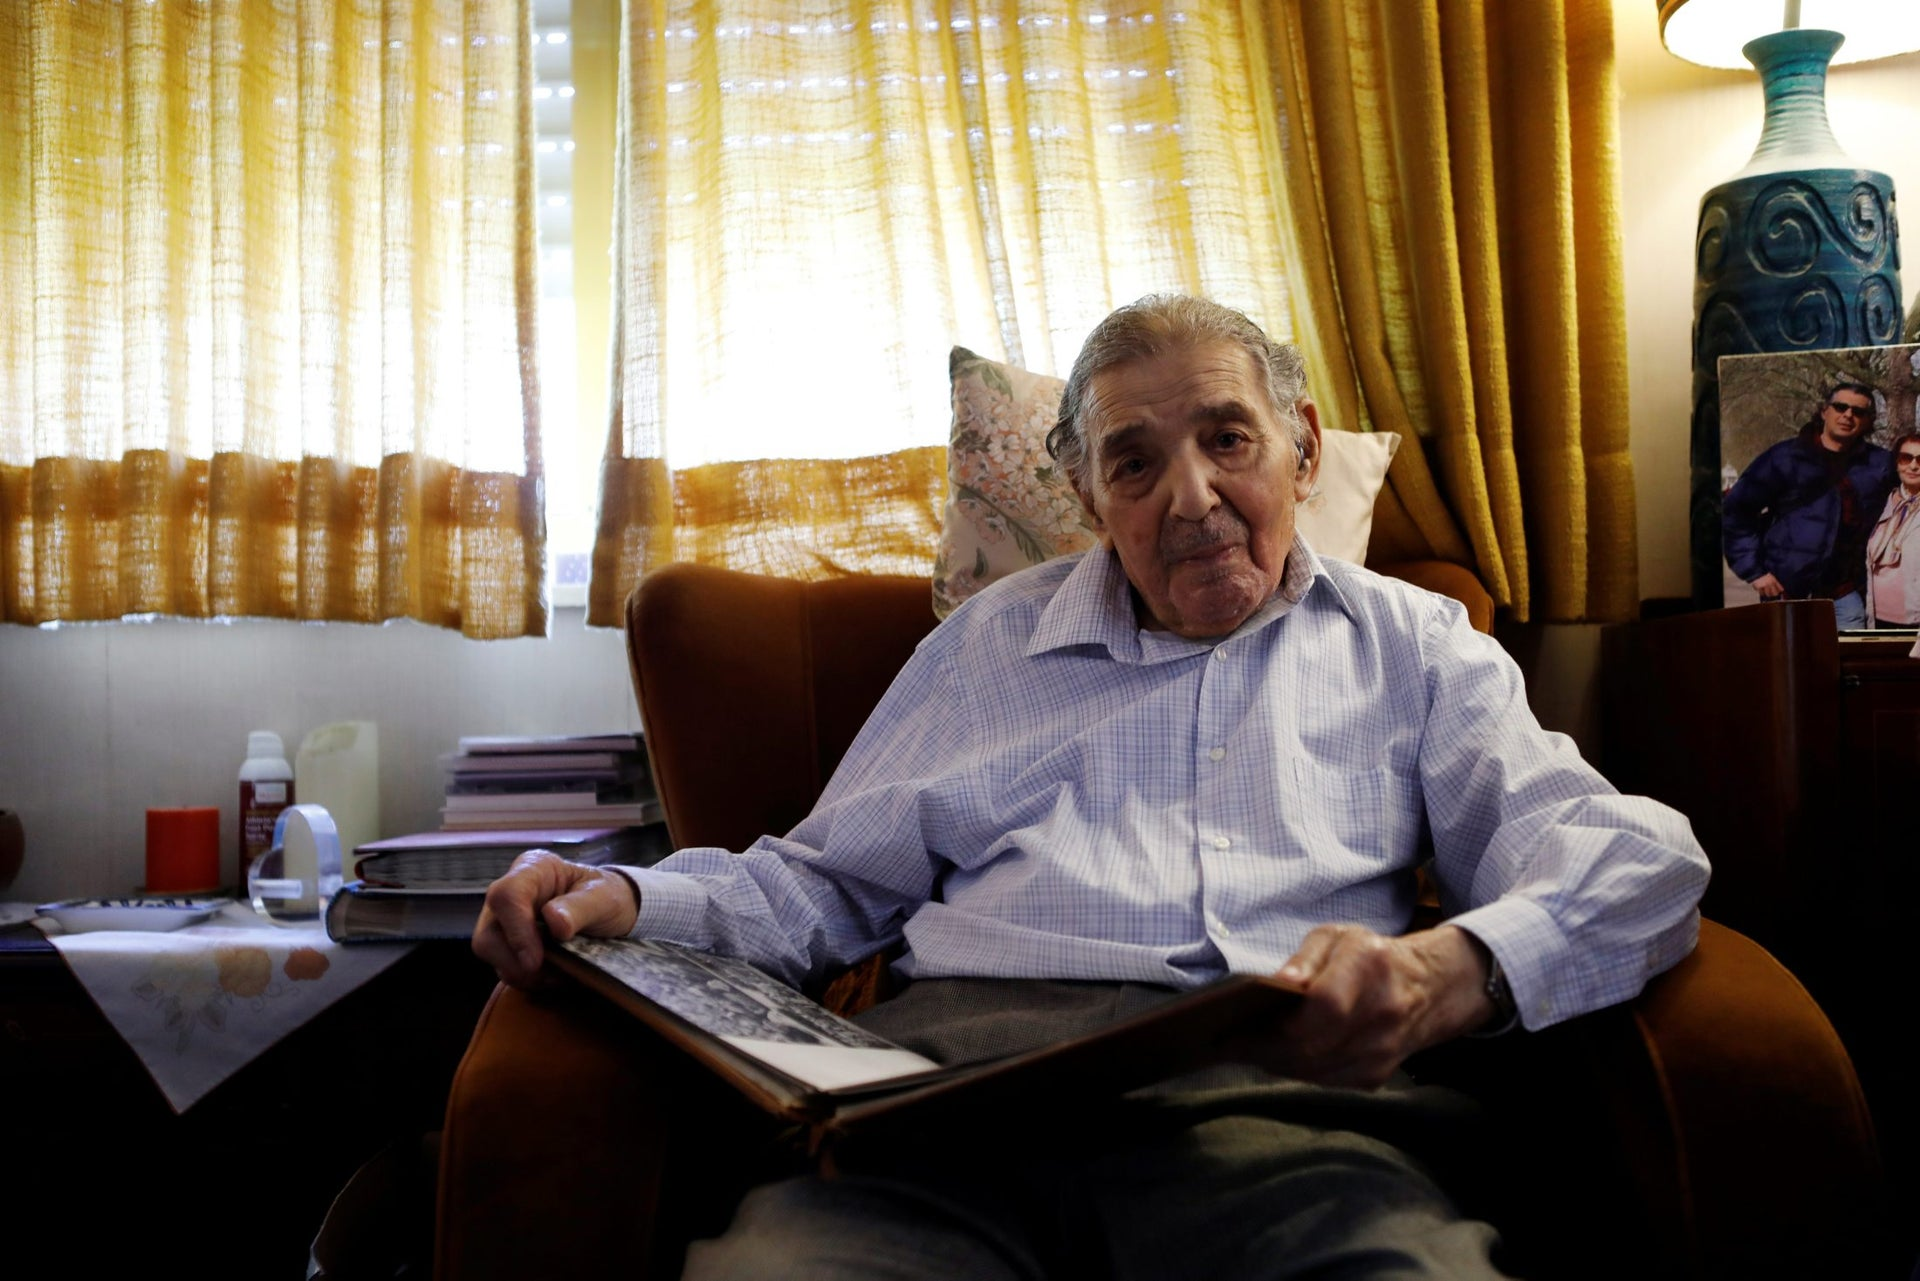 Ram Haviv, 93, who served in the British army between 1943-1946, holds a photo album during an interview in his home in Jerusalem, June 14, 2018. Picture taken June 14, 2018.